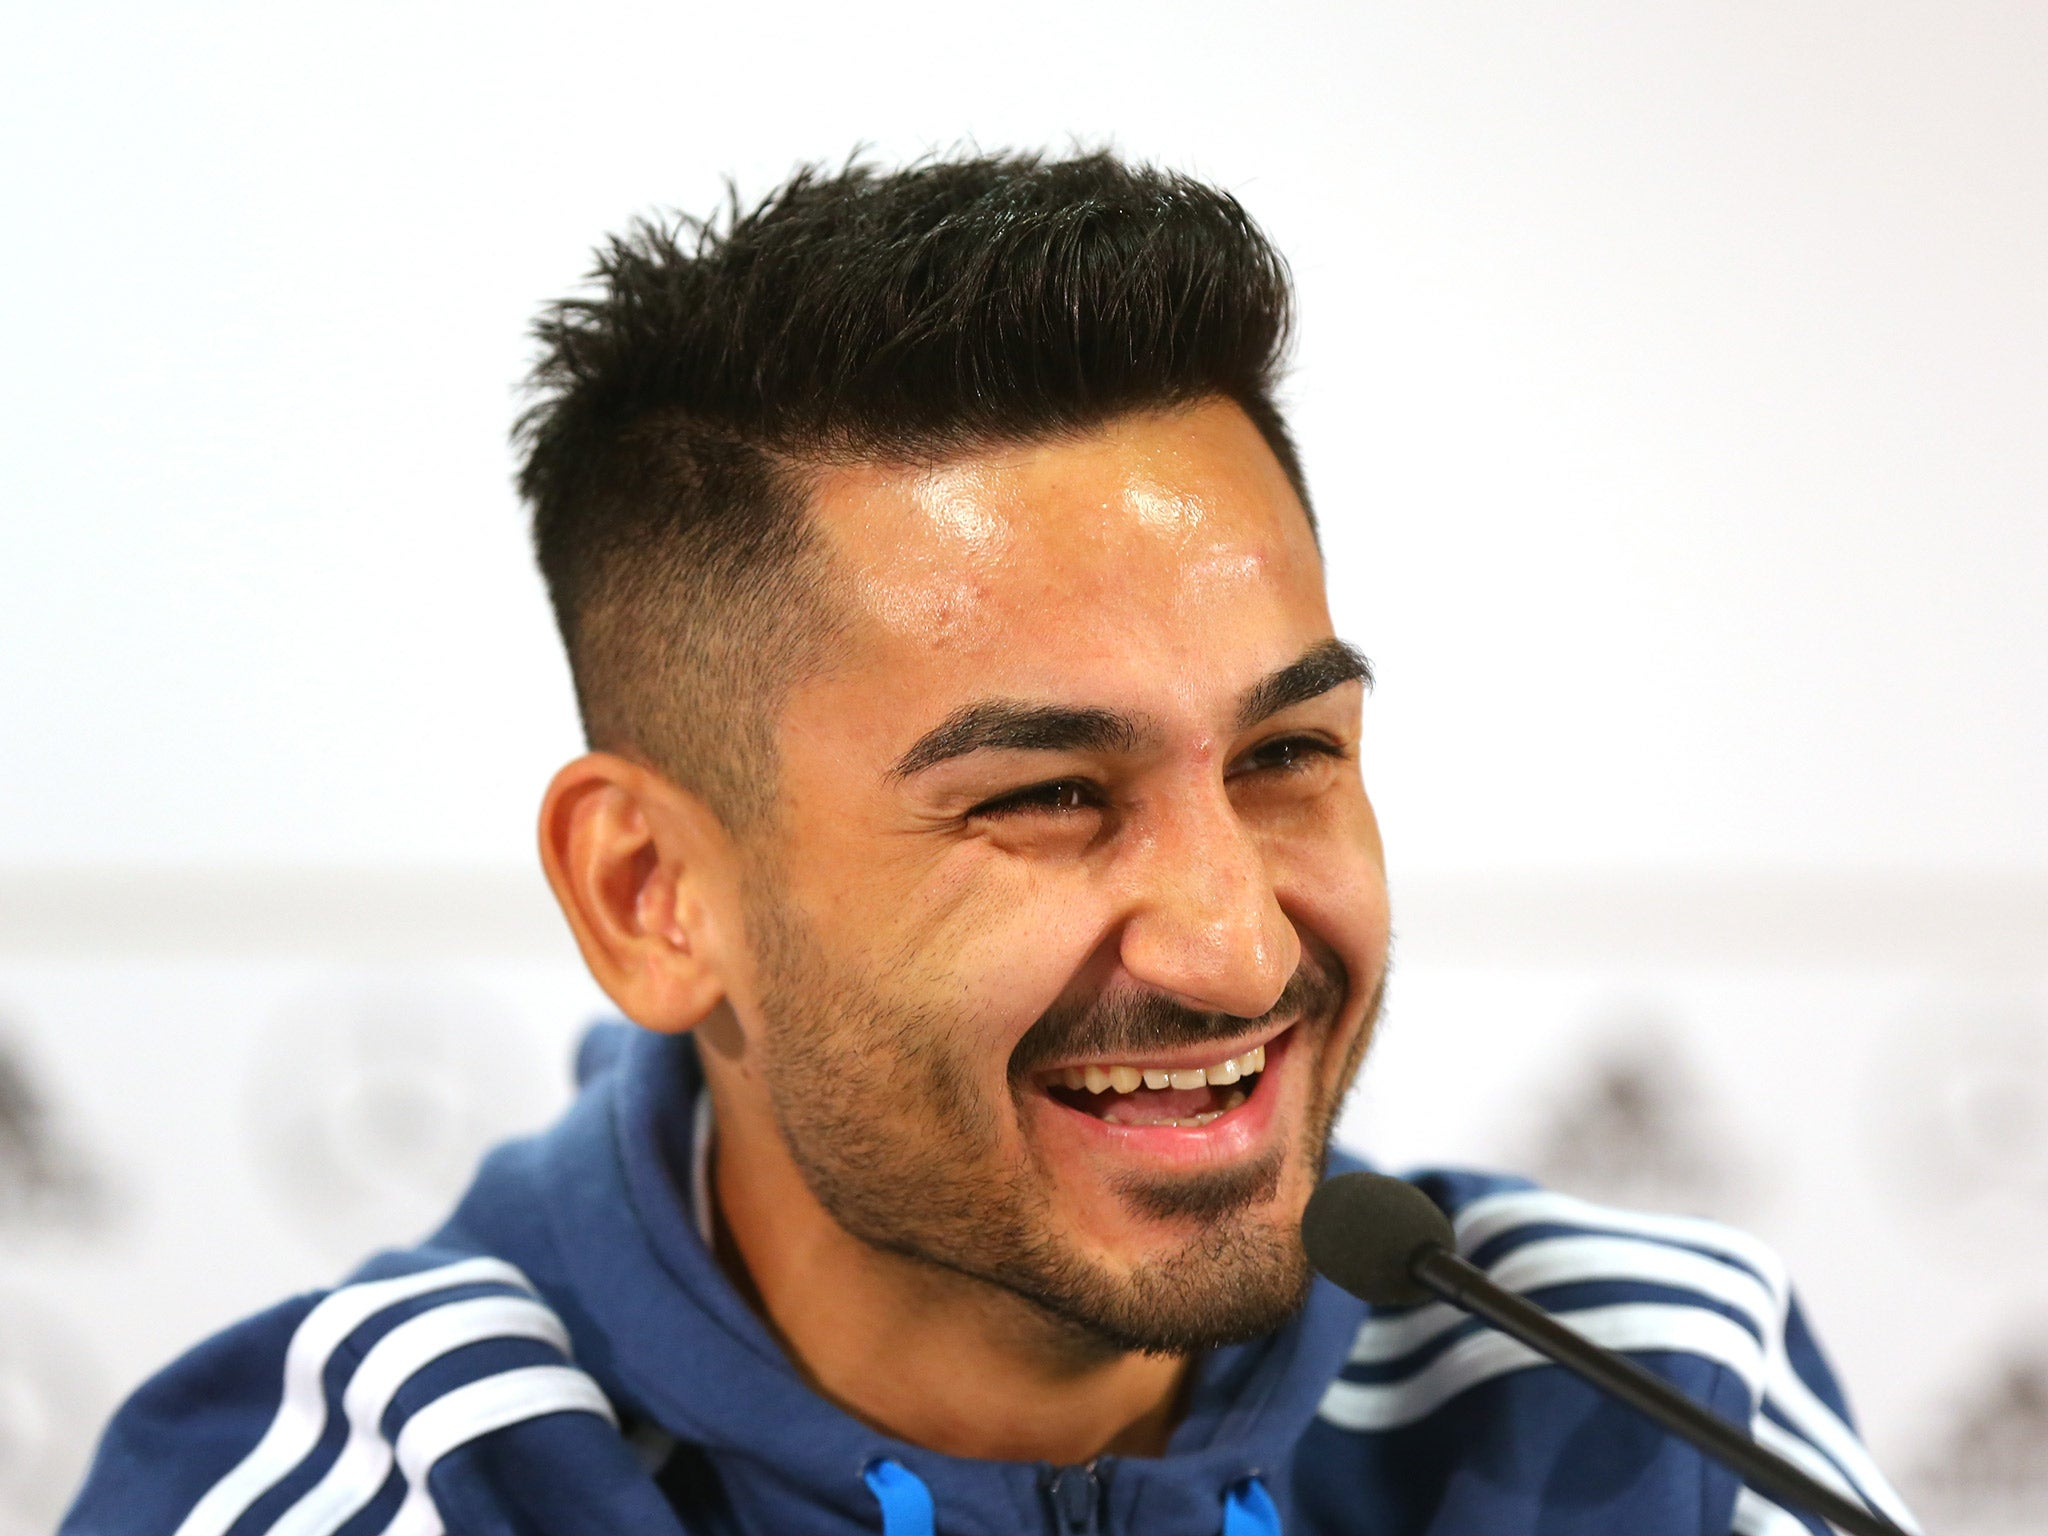 Ilkay Gundogan breaks his own transfer to Manchester City after